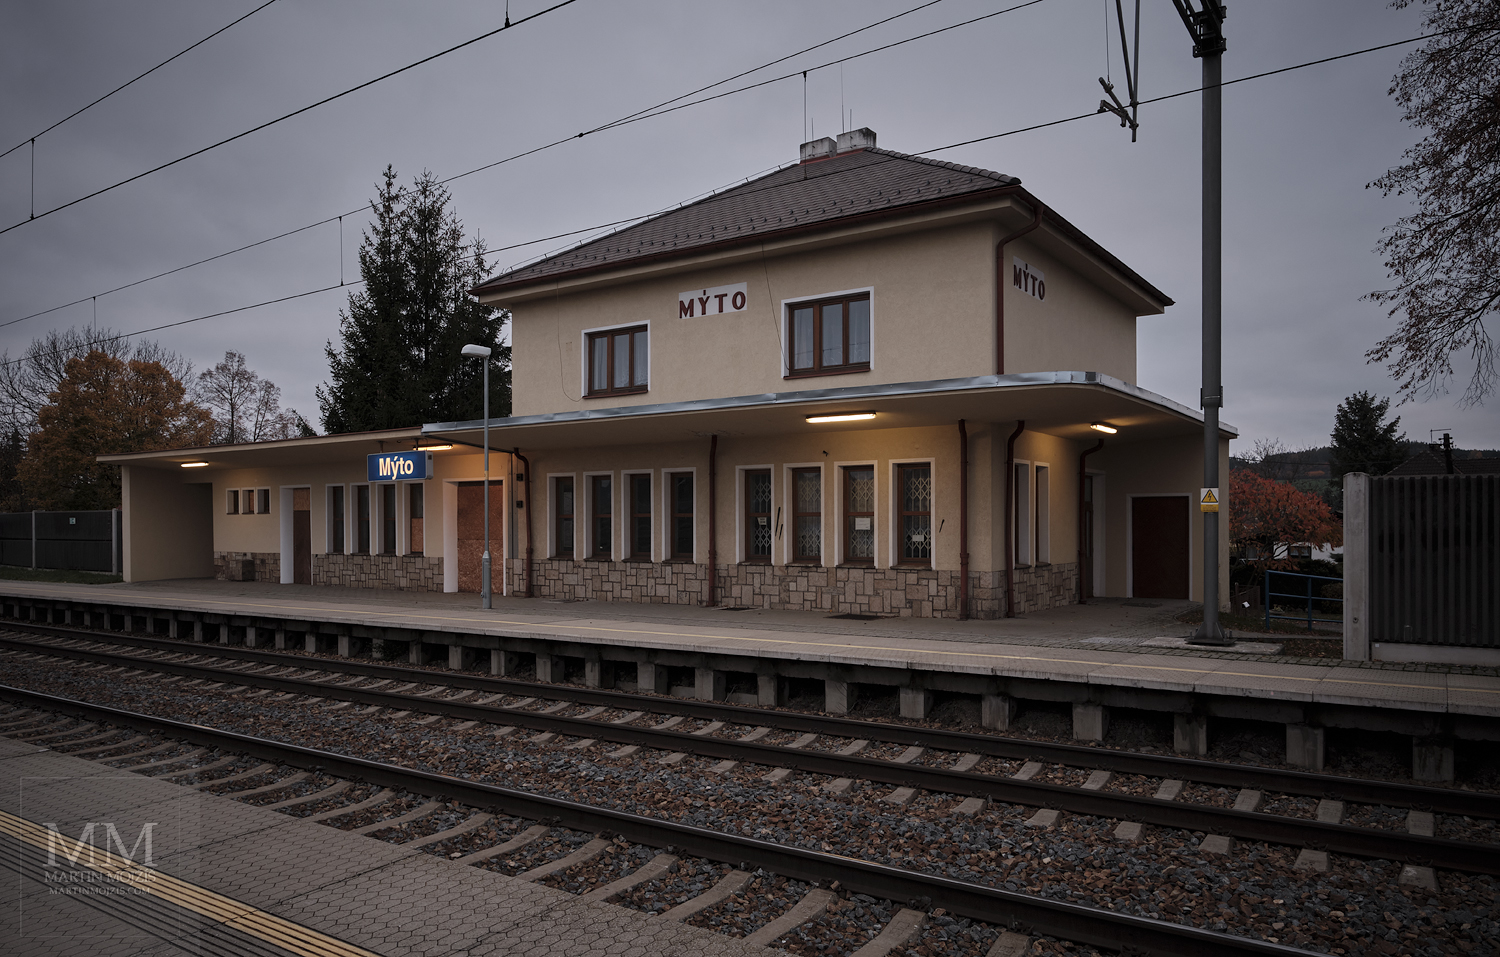 Photographic report from railway station Myto by Martin Mojzis.